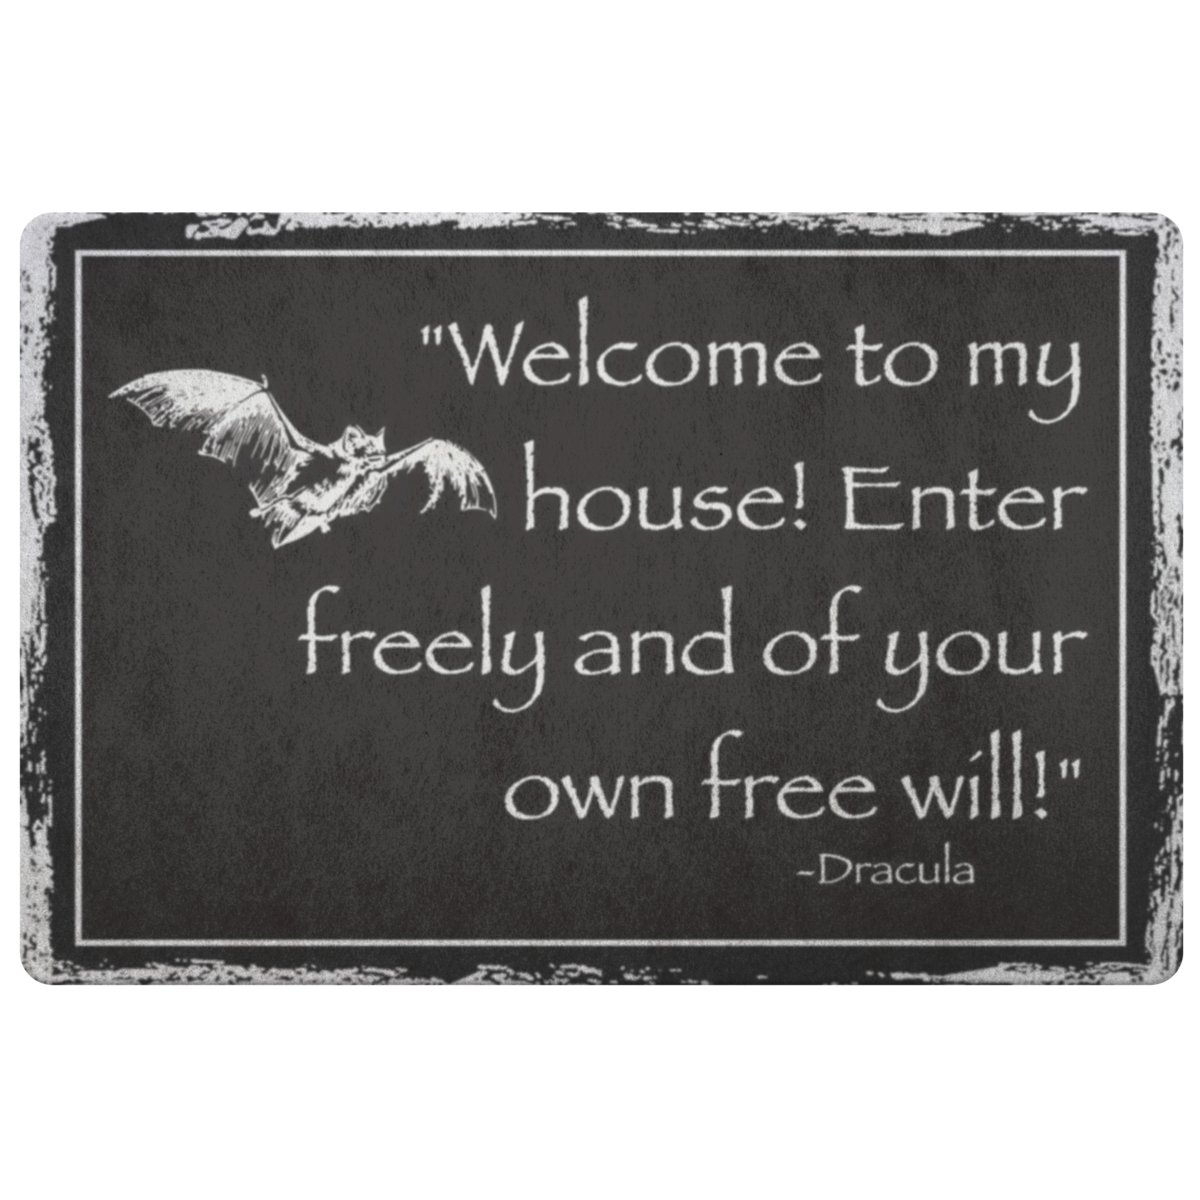 Dracula Quote Doormat Welcome To My House Enter Freely And Of Your Own Free Will Dracula Add Some Fright To Your Dracula Quotes Dracula Survival Quotes